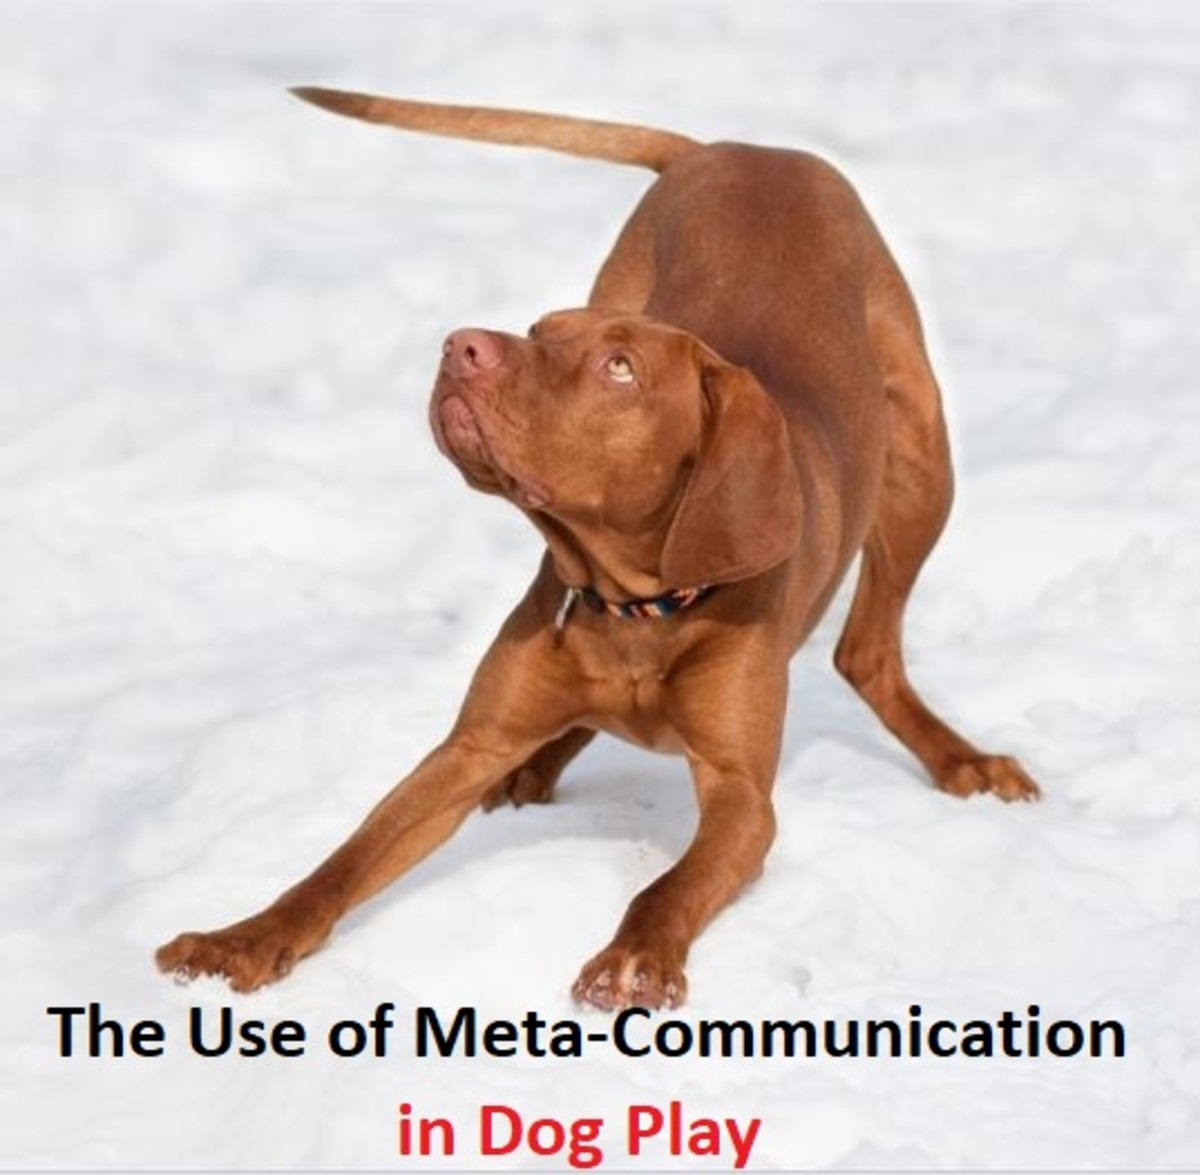 The Use of Meta-Communication in Dog Play